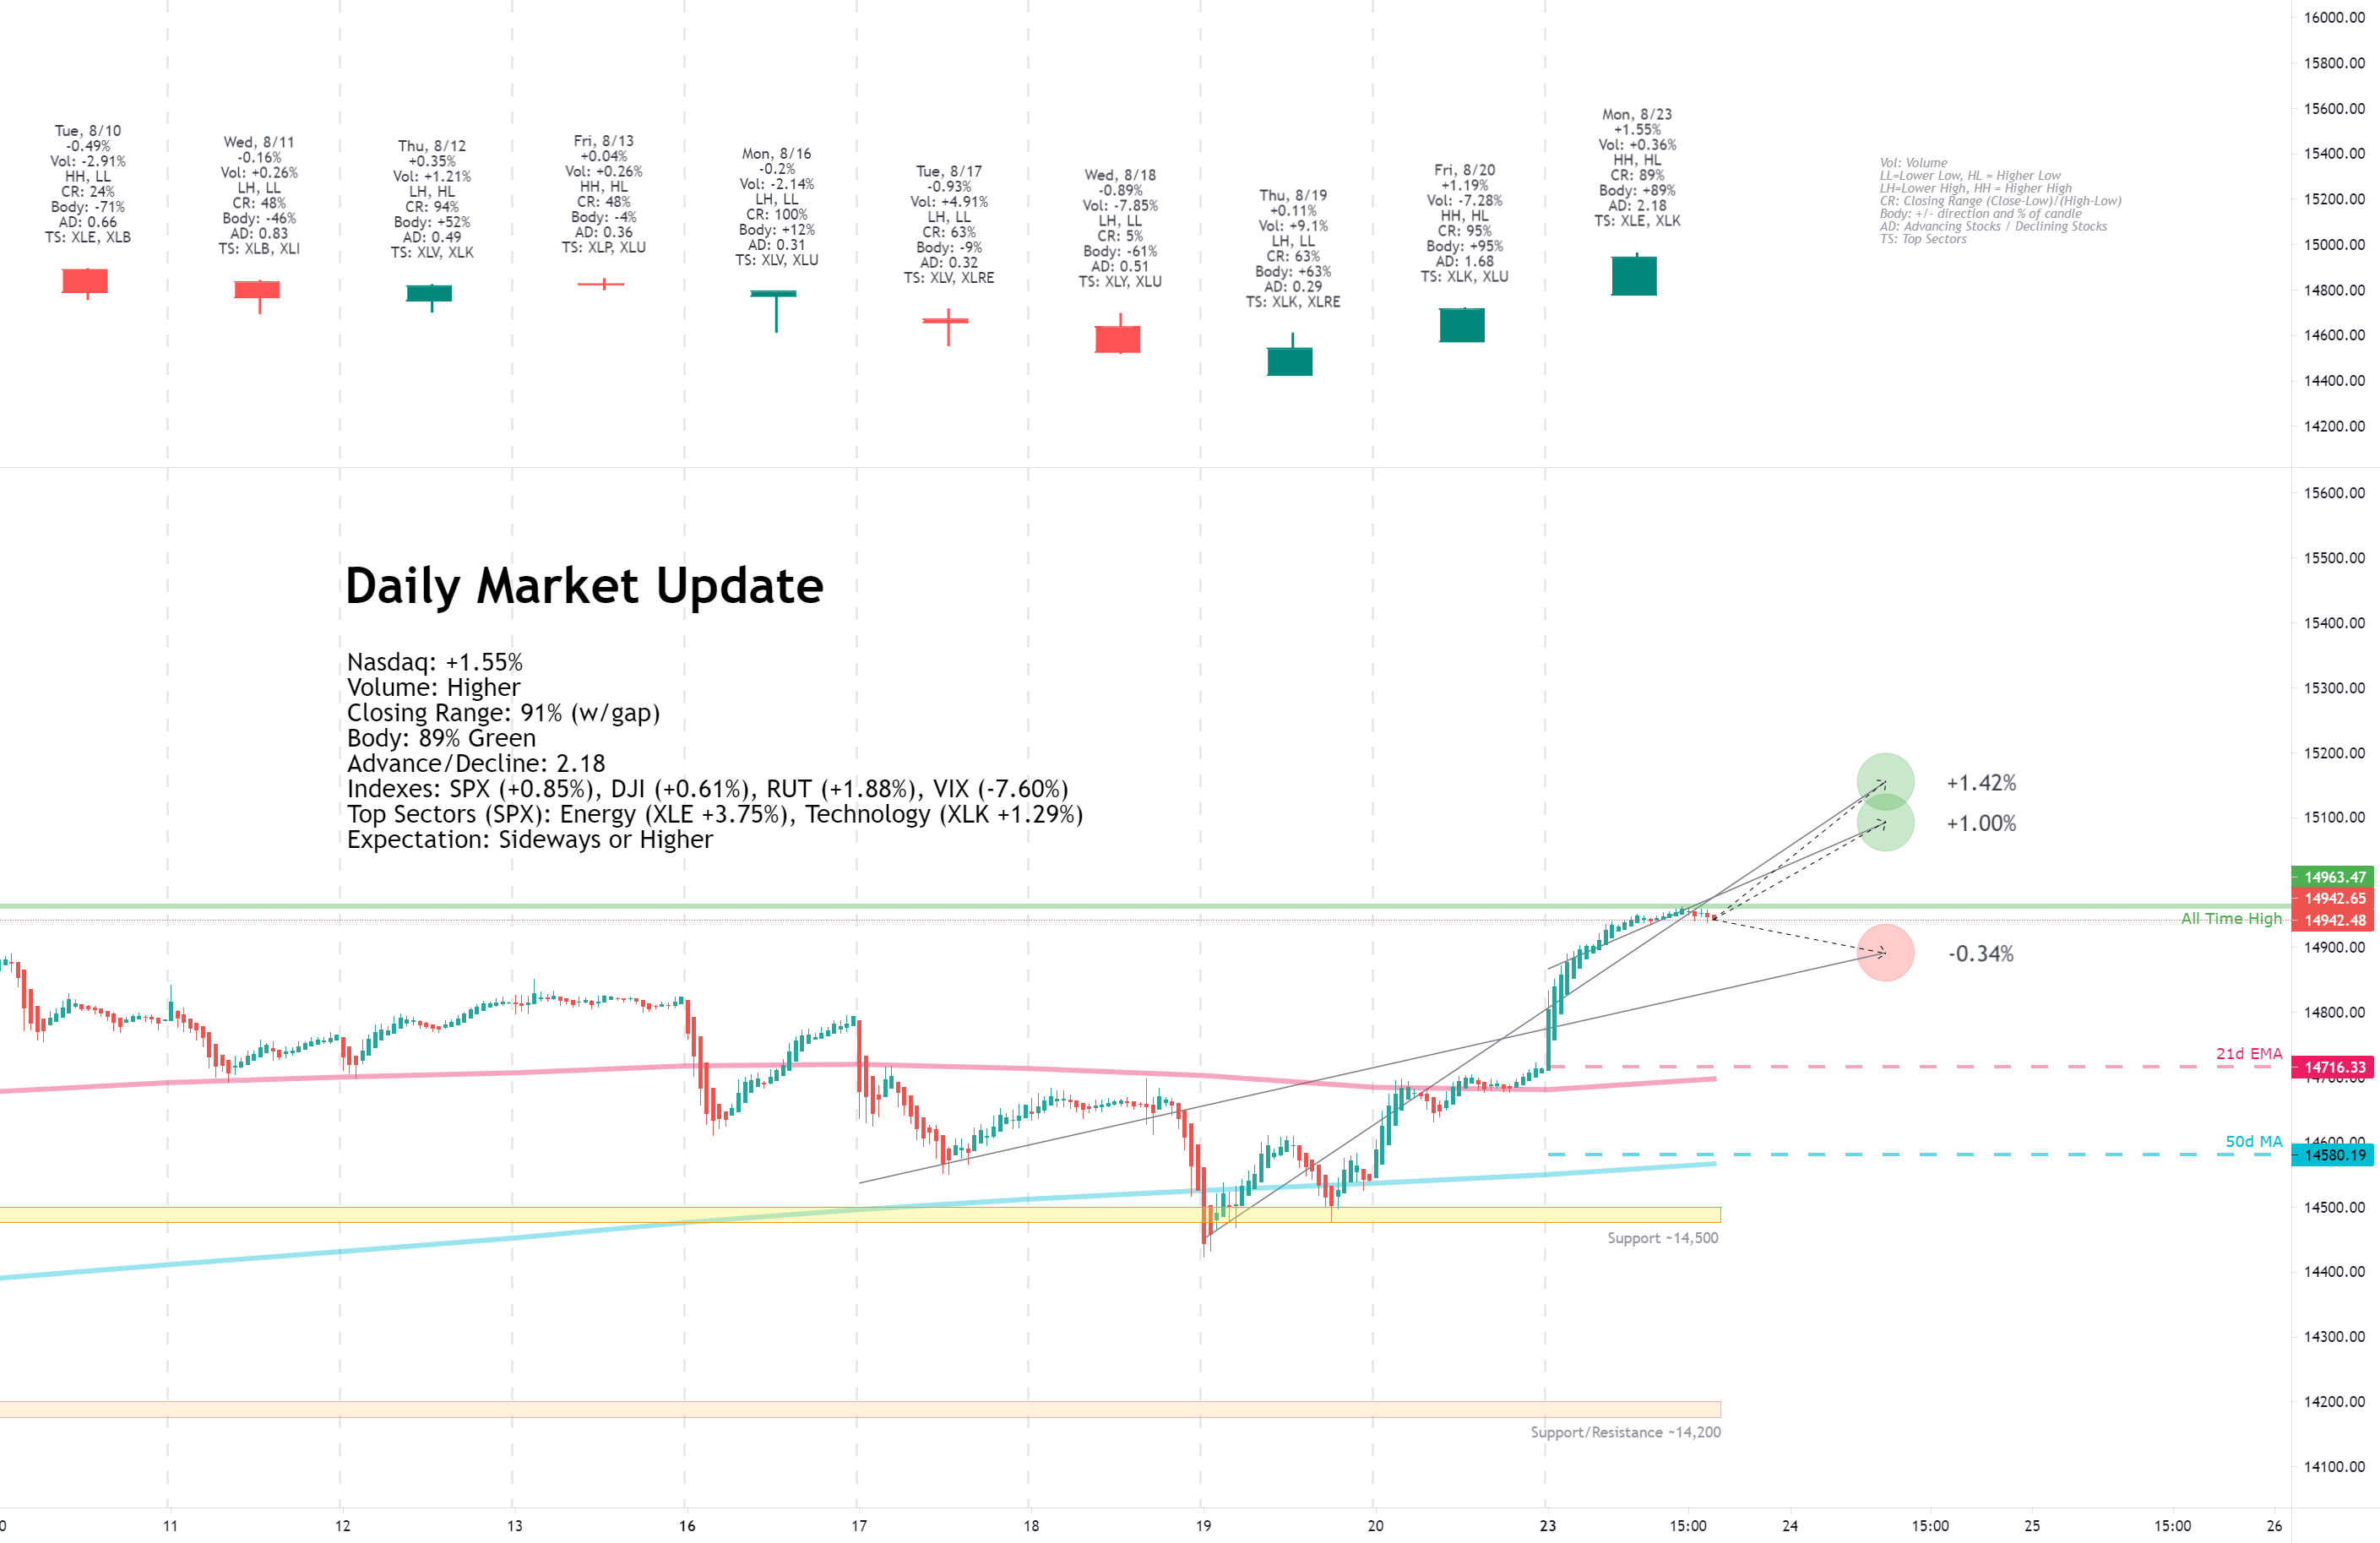 Daily Market Update for 8/23